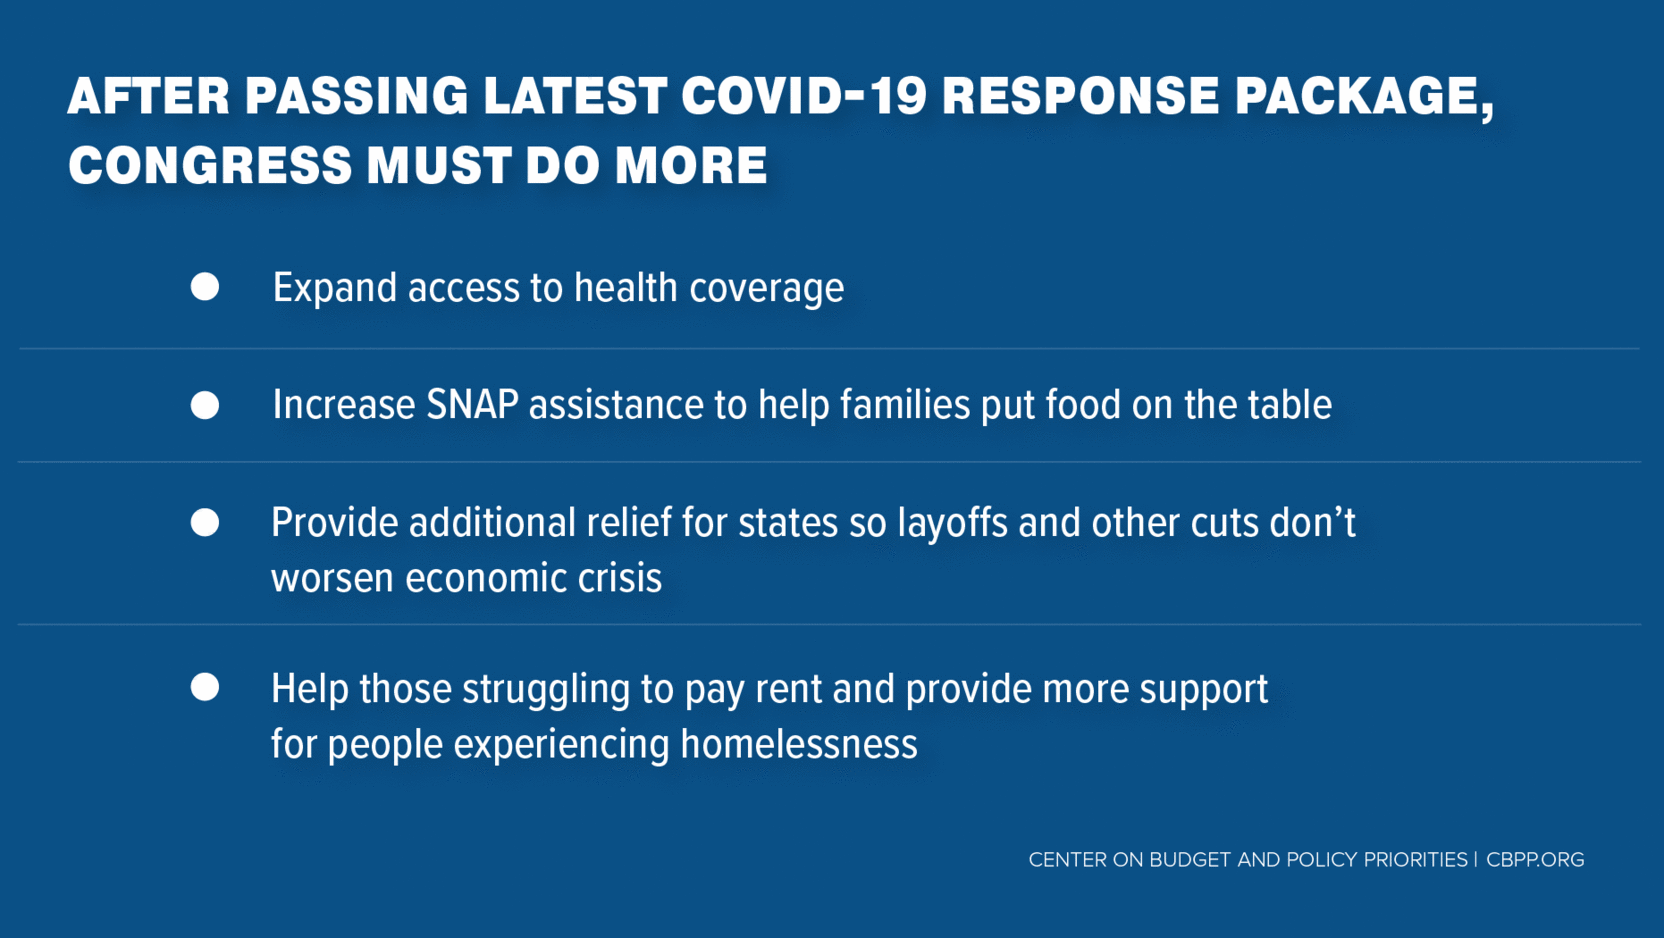 After Passing Latest COVID-19 Response Package, Congress Must Do More